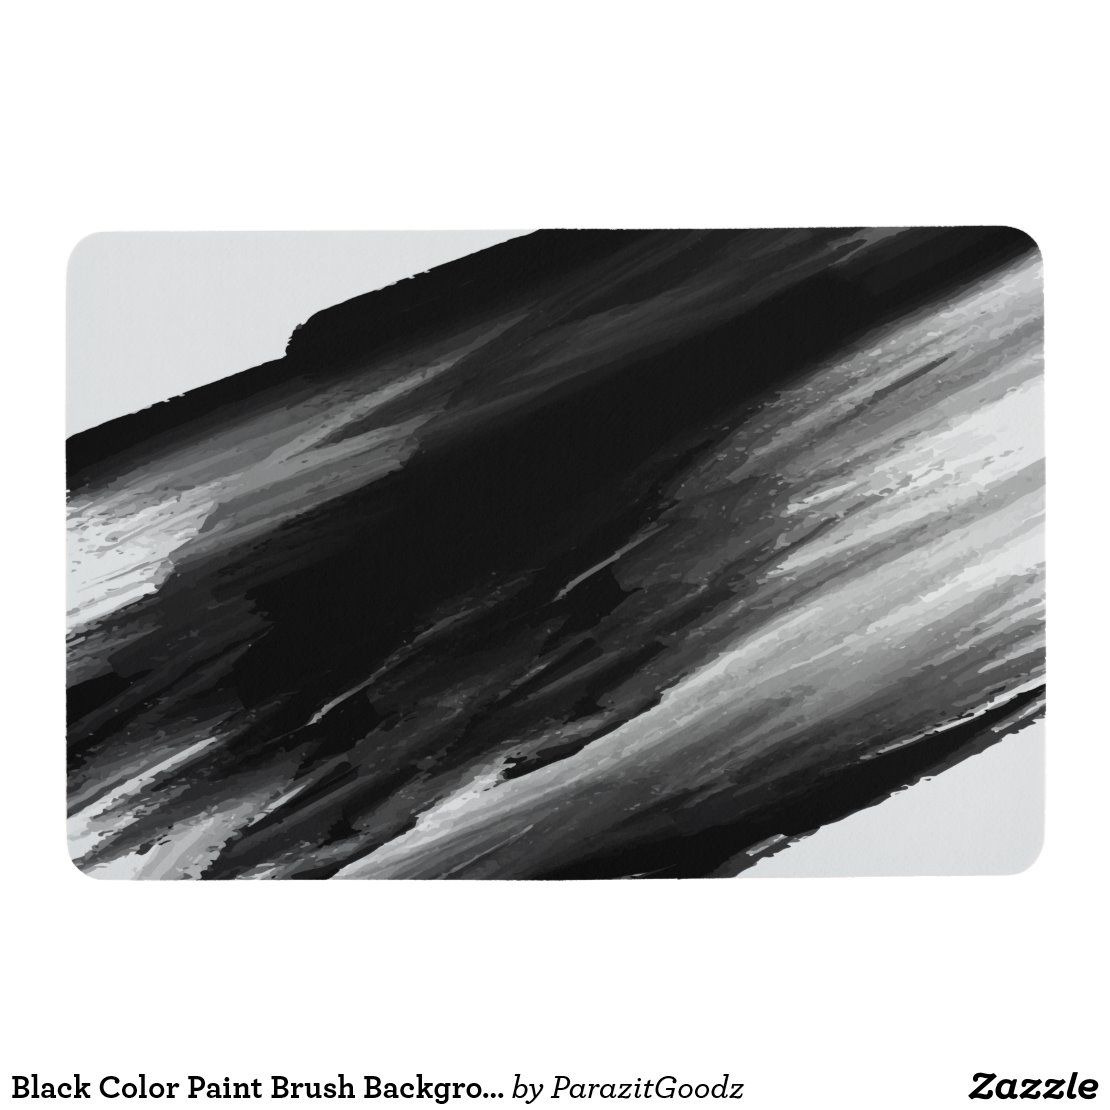 Black Color Paint Brush Background Floor Mat Zazzle Com In 2020 Paint Colors Floor Mats Paint Brushes